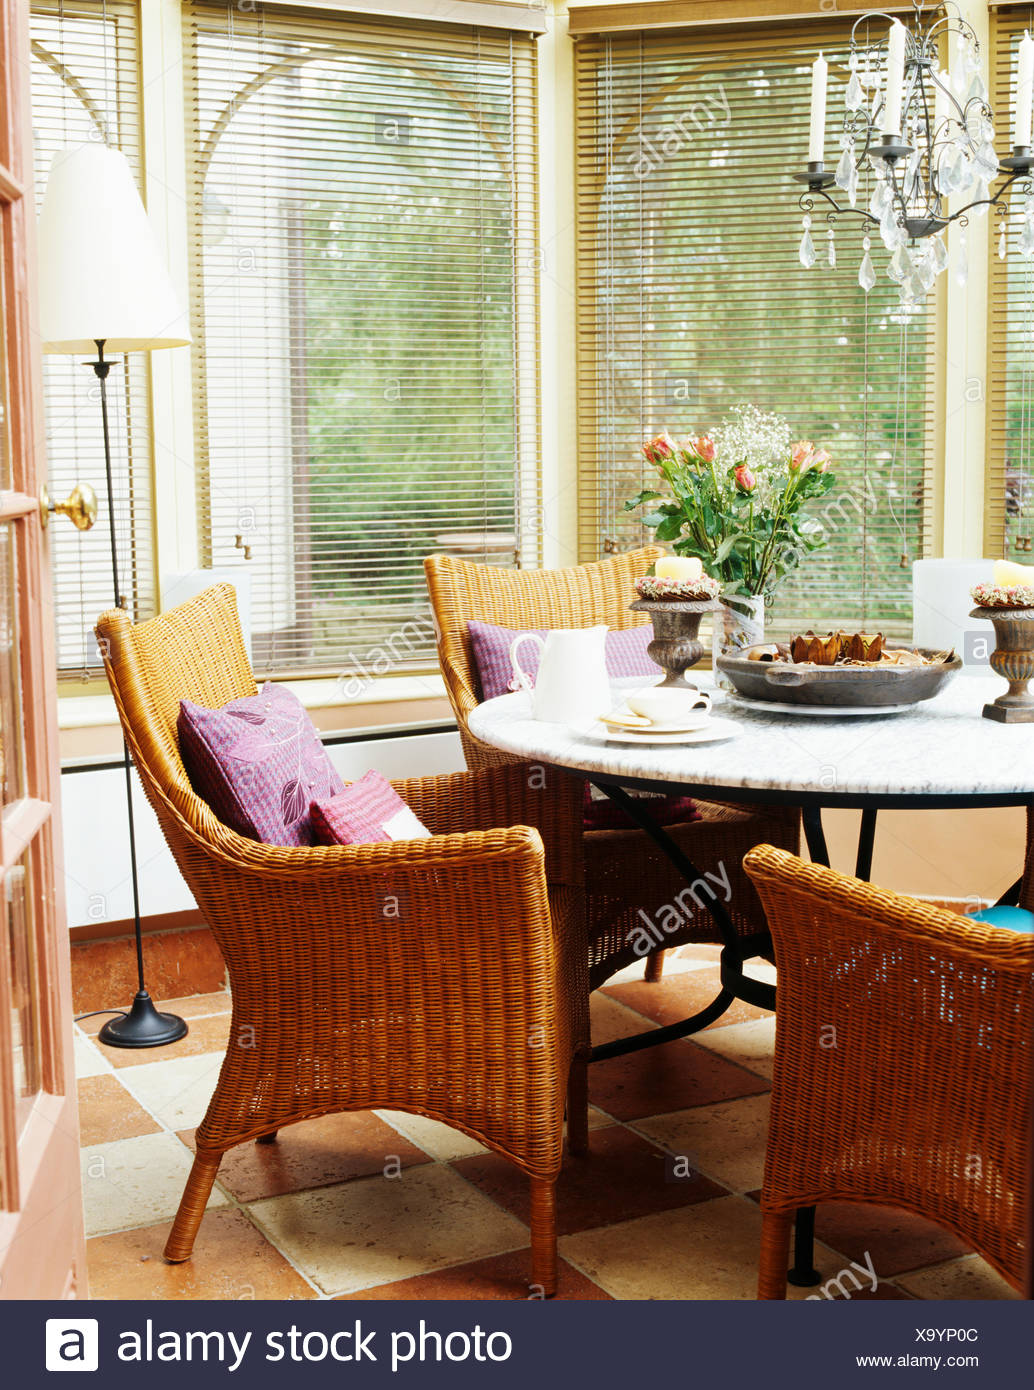 Wicker Armchairs At Circular Table In Conservatory Dining Room With Venetian Blinds On The Windows